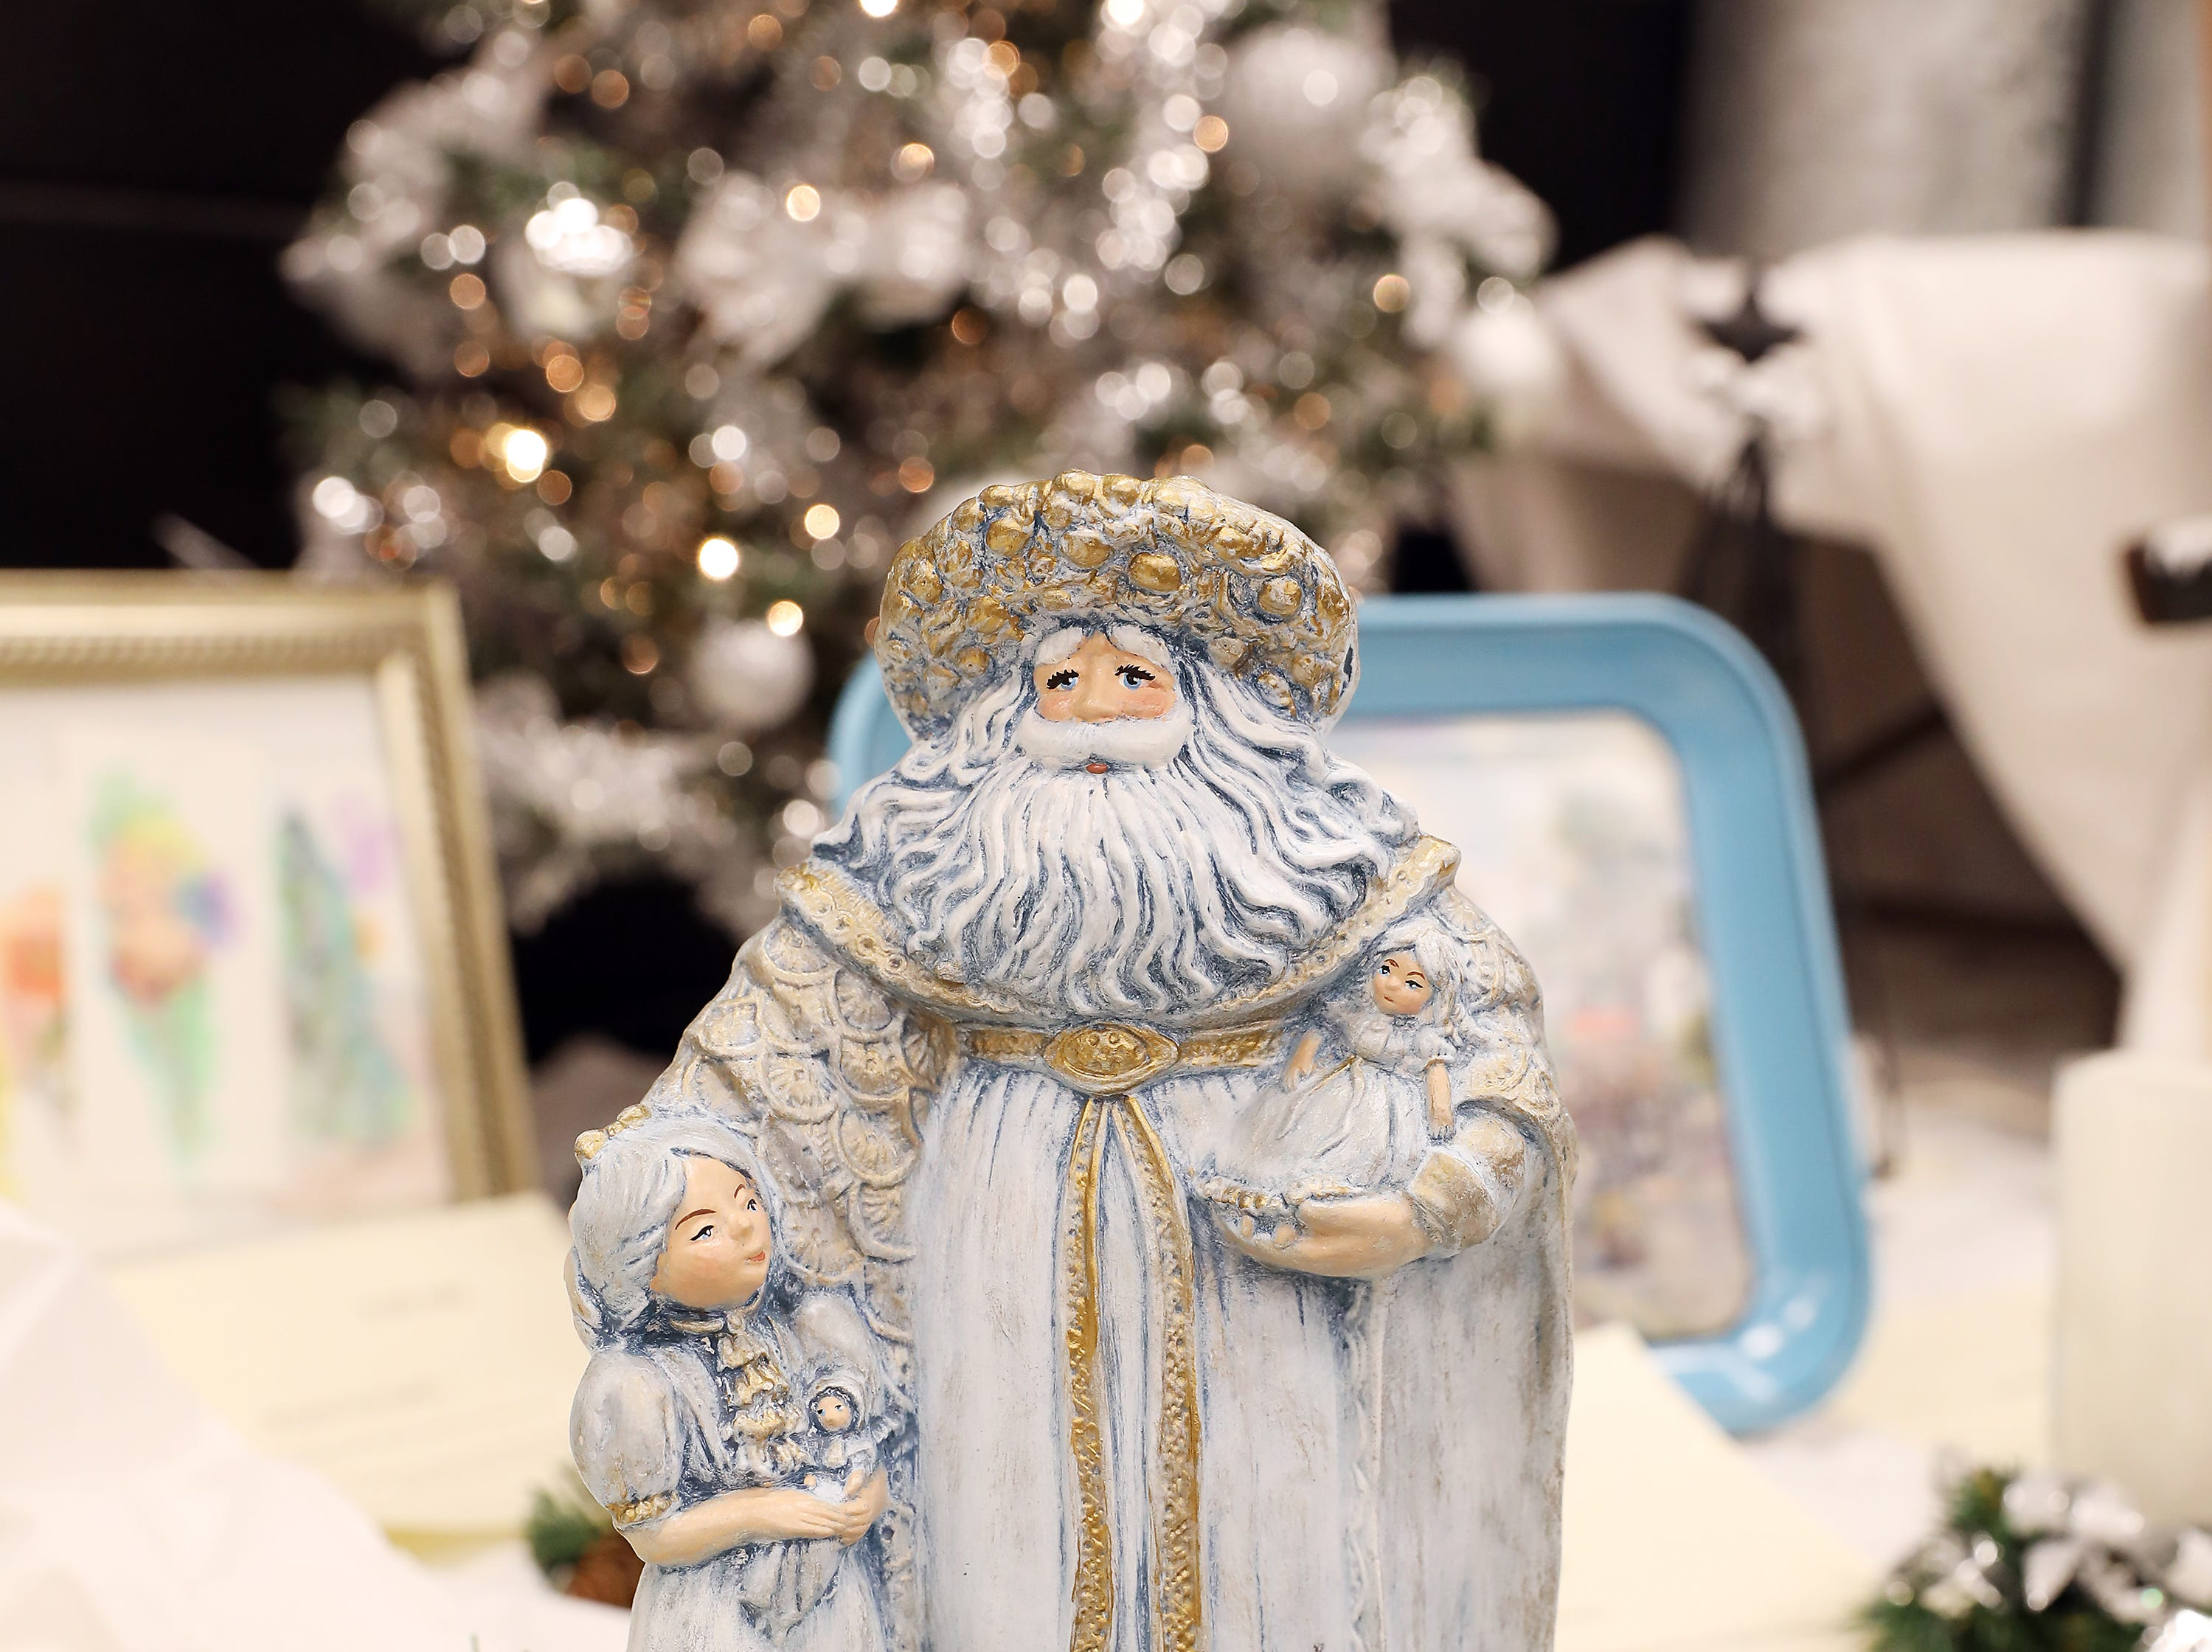 """1834:15 PMHoneyBaked HamOtherOld Saint NicholasA 15"""" tall Old Saint Nicholas dressed in his winter blues, accompained by a small child, with green pine, gold ribbon, gold bulbs and mini packages.8lb Bone In Ham"""